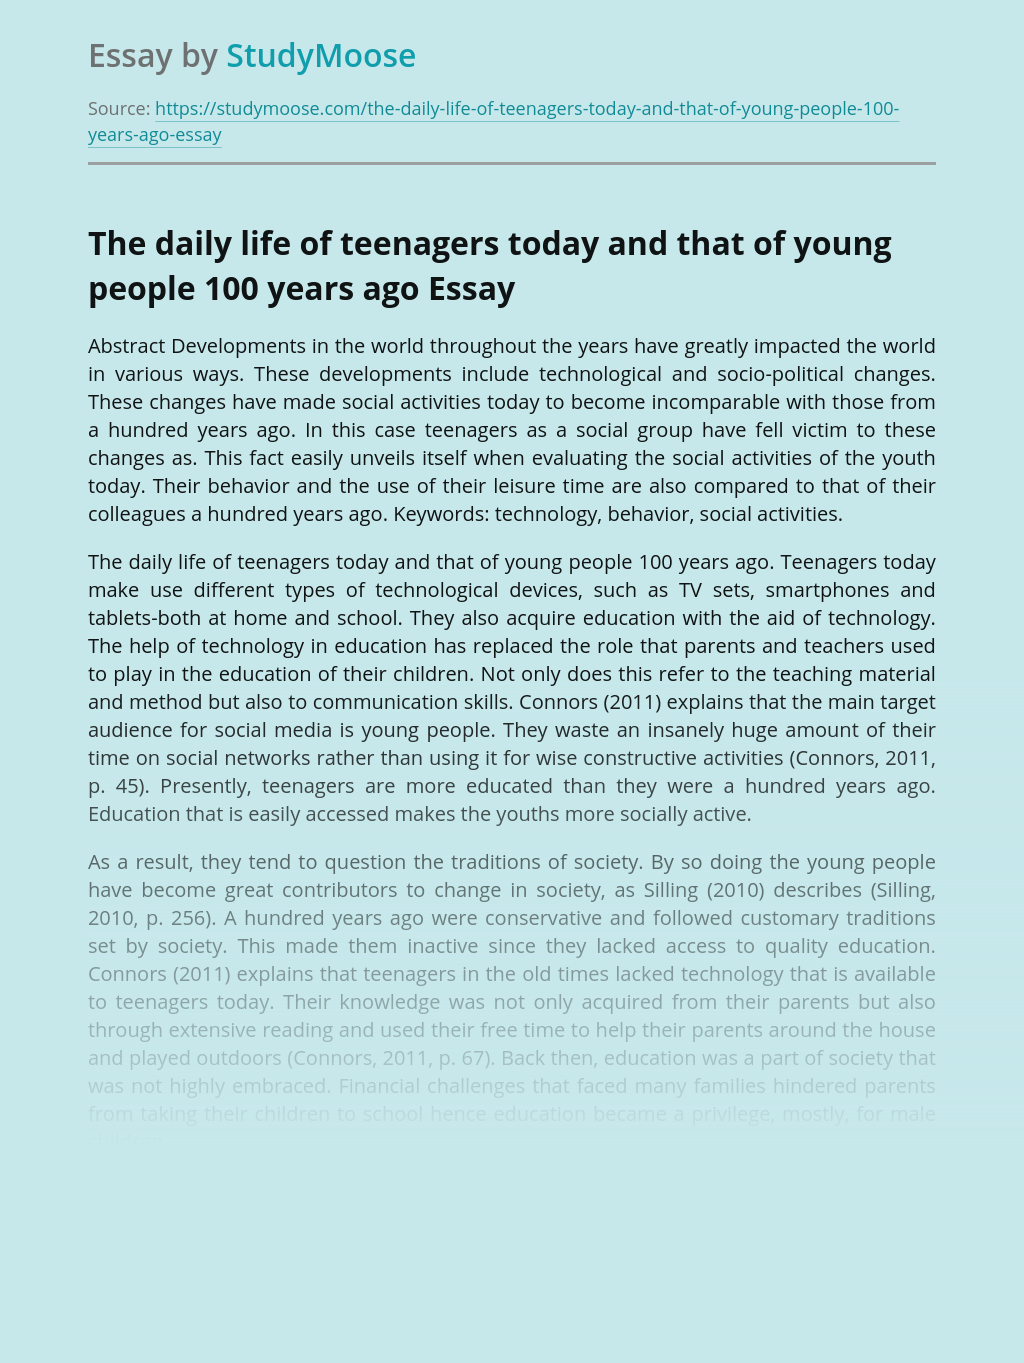 The daily life of teenagers today and that of young people 100 years ago